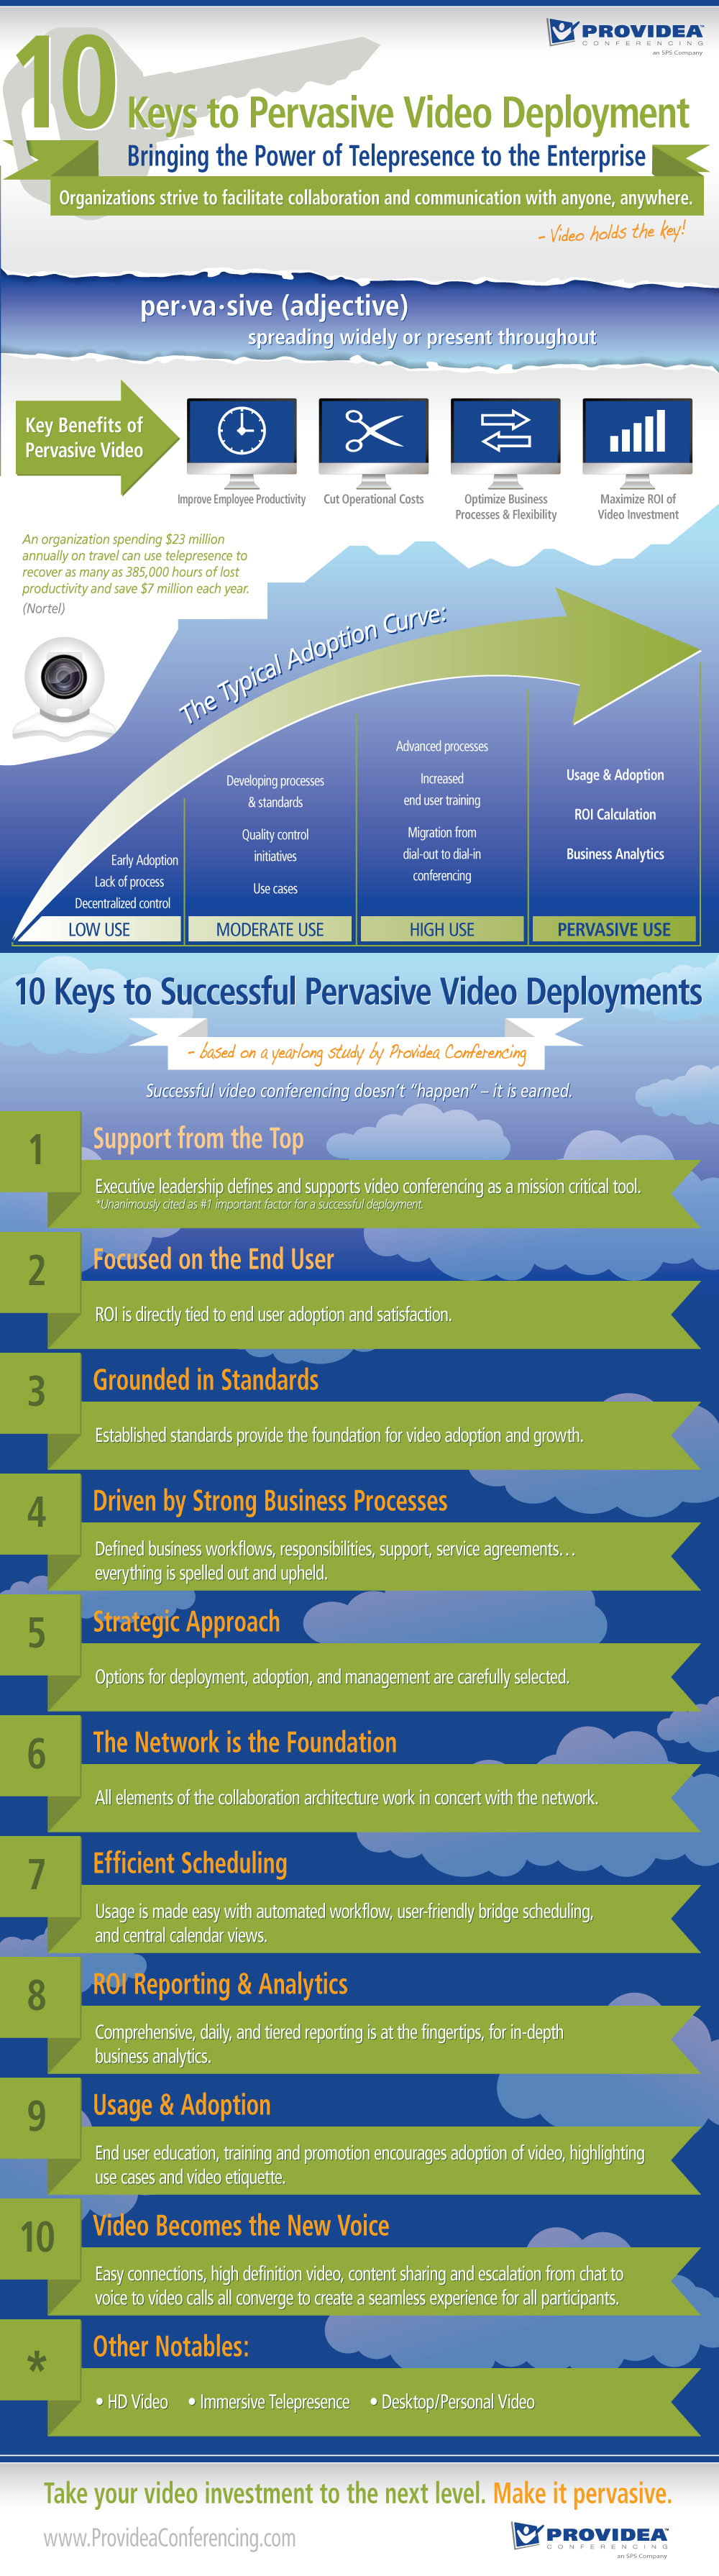 10 Keys to Pervasive Video Deployment